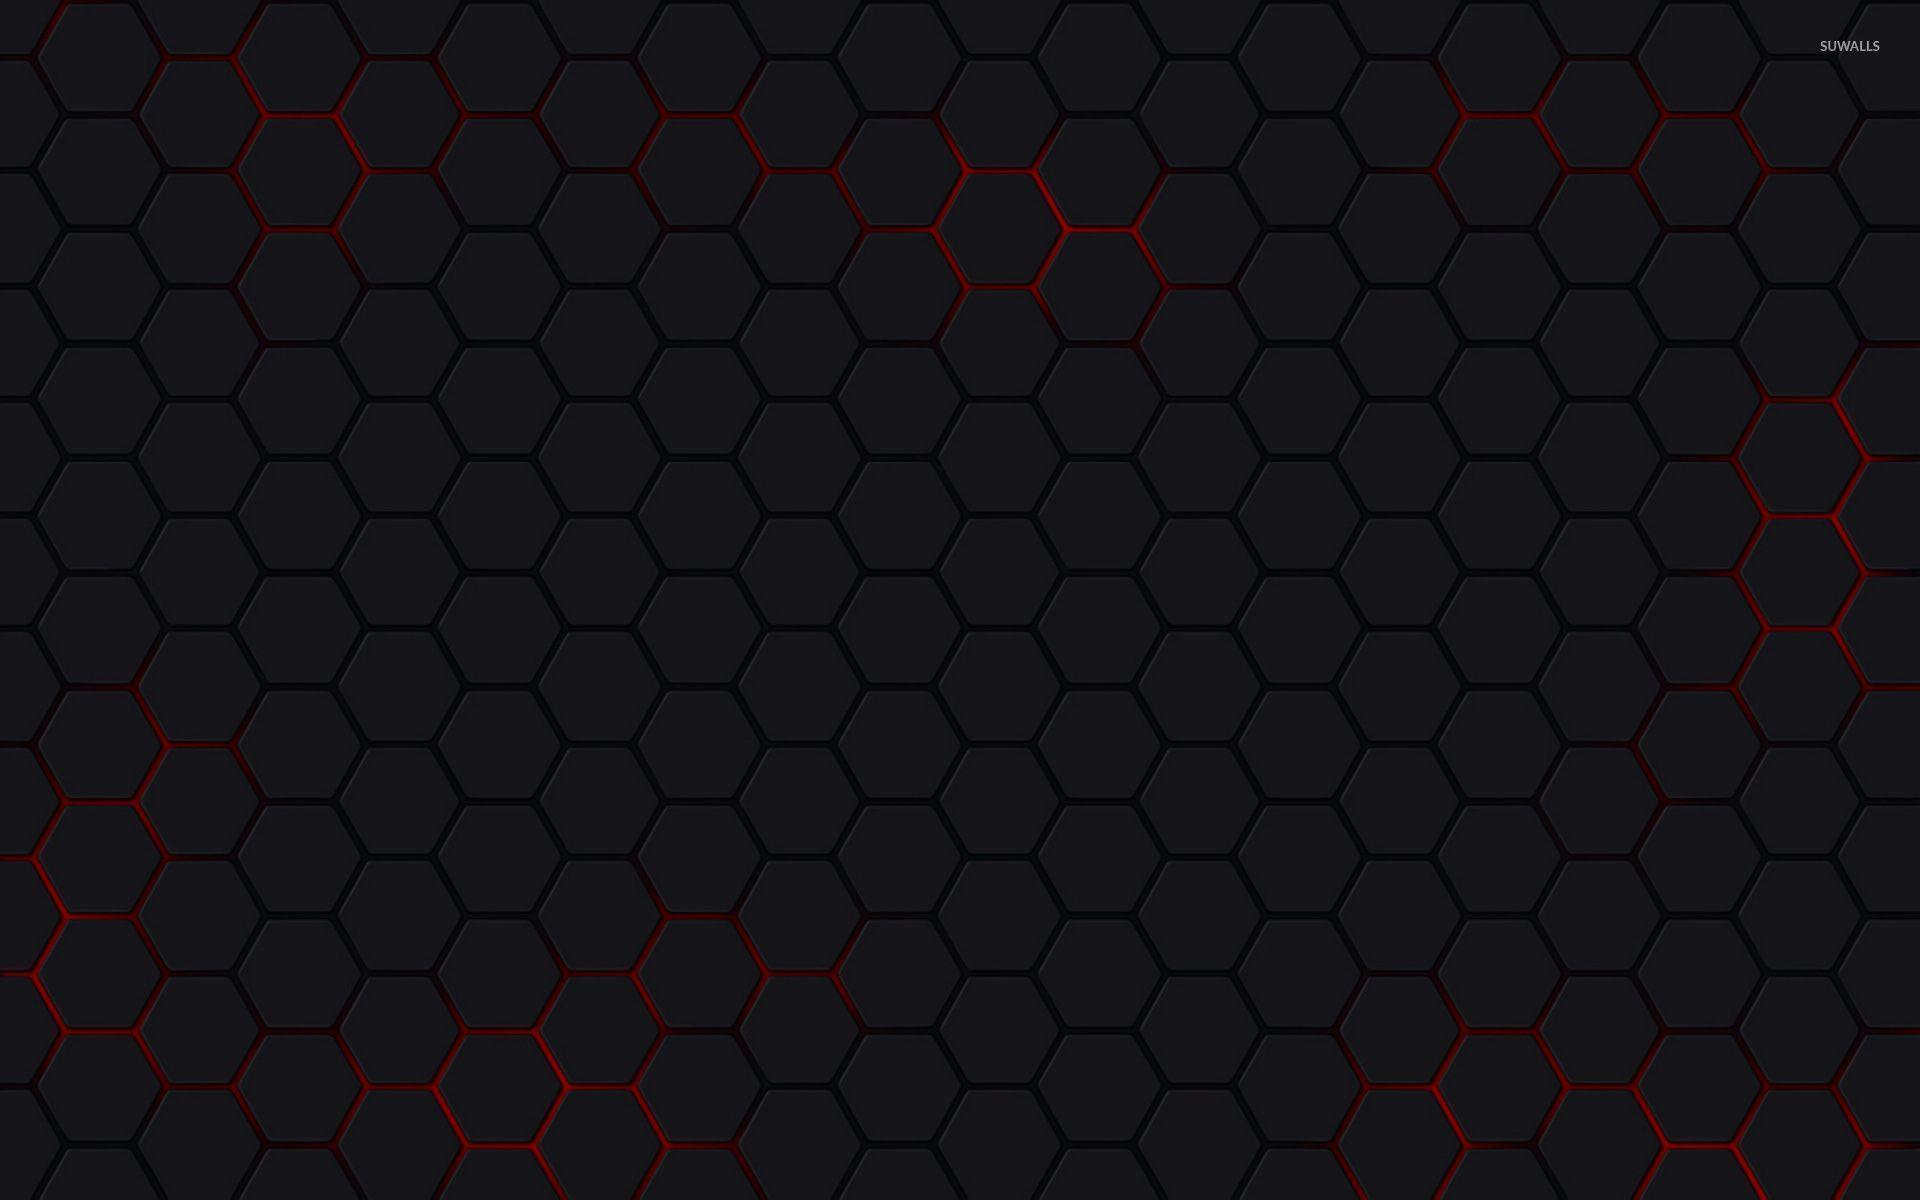 Hexagon wallpapers